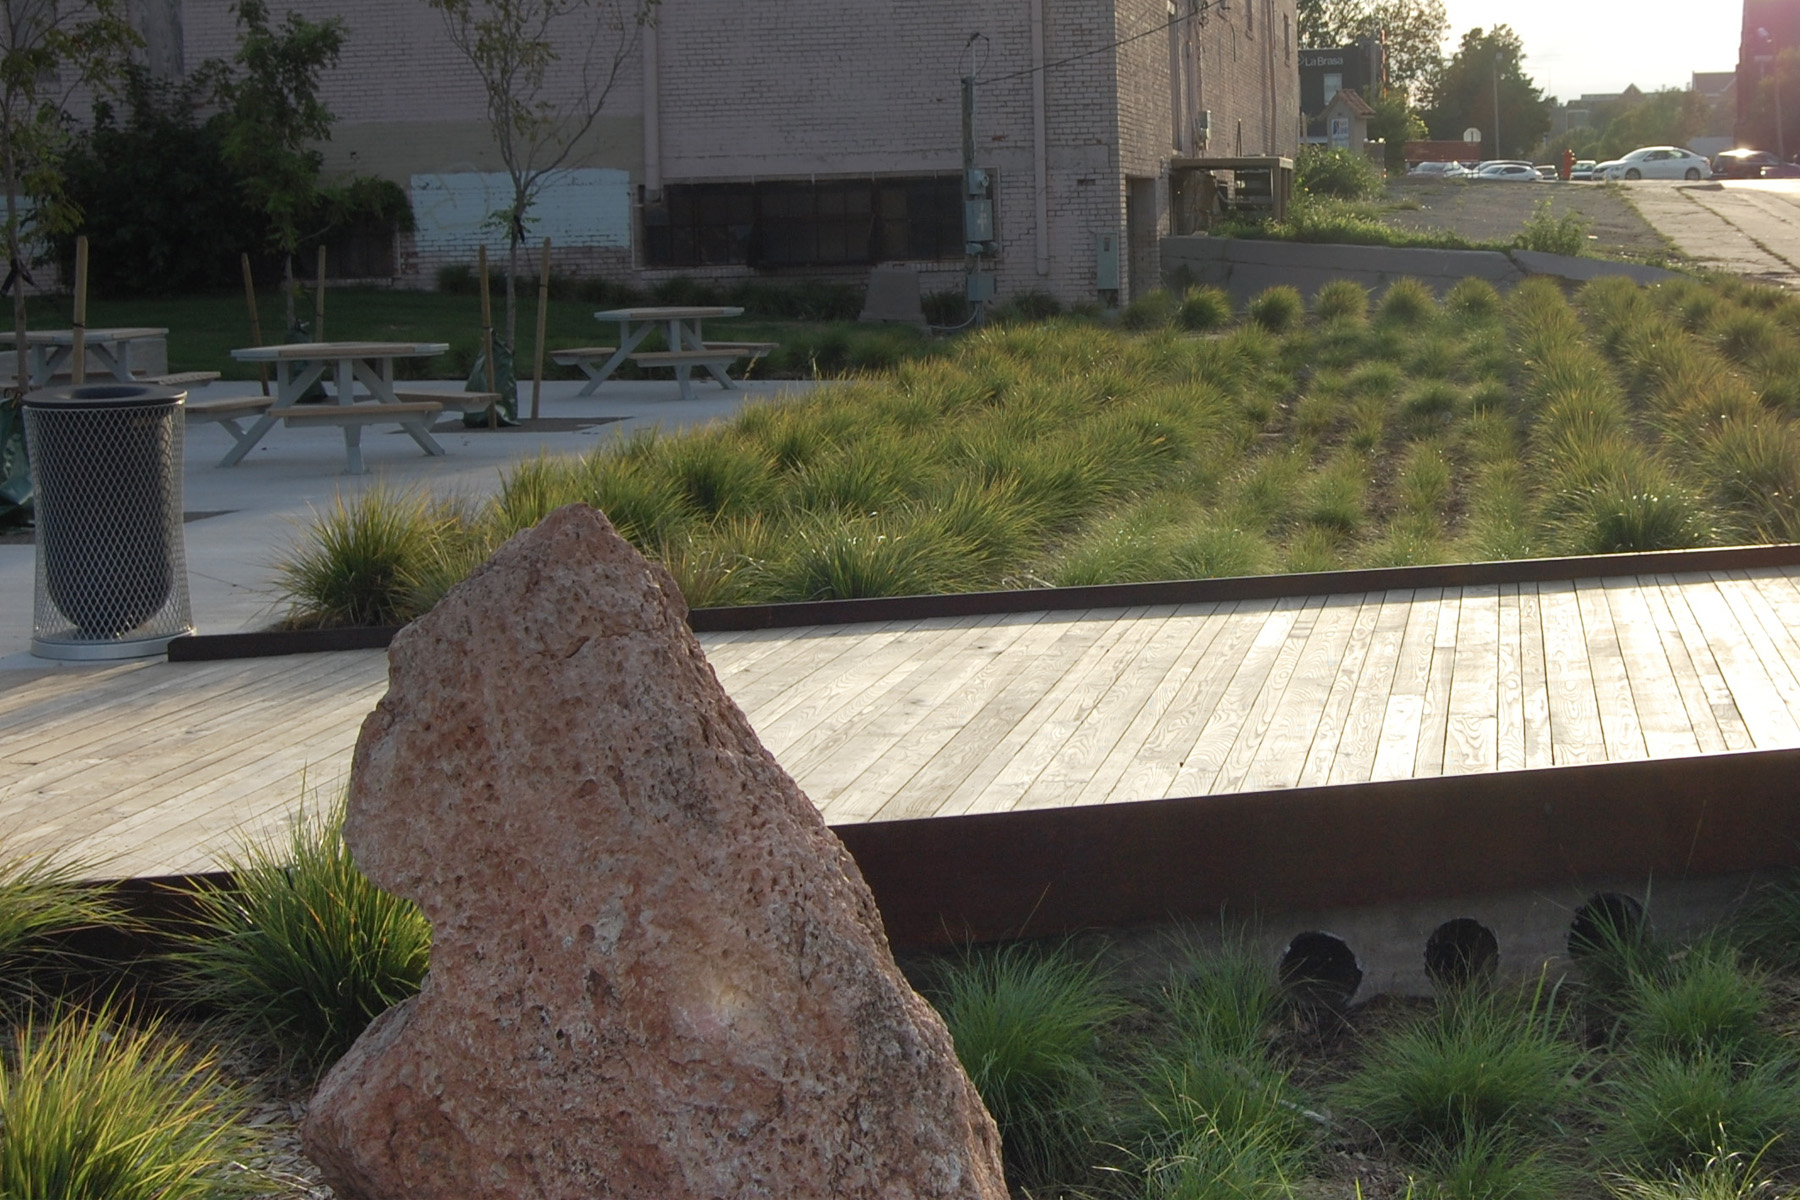 Natural Systems - Strongly rooted in horticulture and ecological design, LAUD Studio deftly inserts natural living systems into each project. From public parks to urban infill, green field to brown field, LAUD Studio utilizes its background in planting design to create comfortable places that attract visitors and provide a pleasing environment. Yet, underlying these places of beauty are additional layers of ecosystem services that allow the spaces to function ecologically and efficiently.